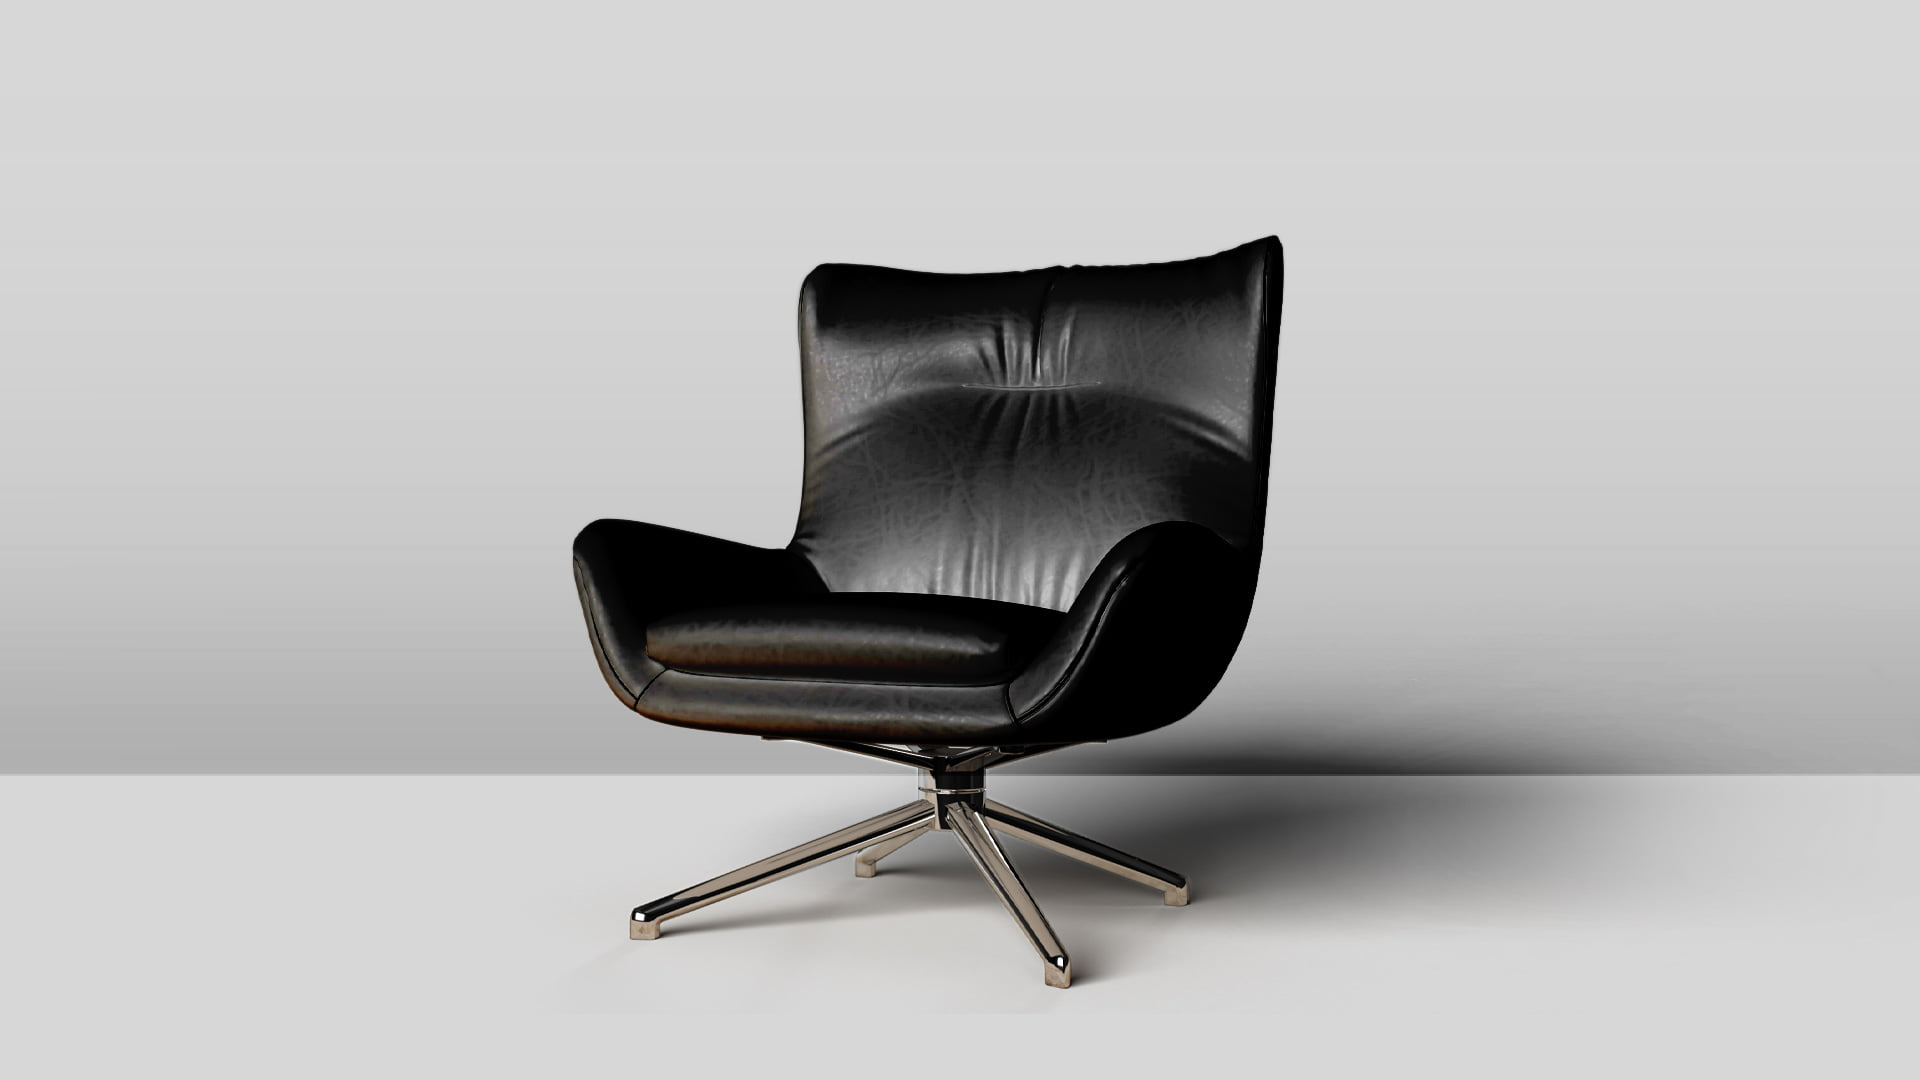 Free-Luxury-CEO-Leather-Office-Chair-Mockup-Download